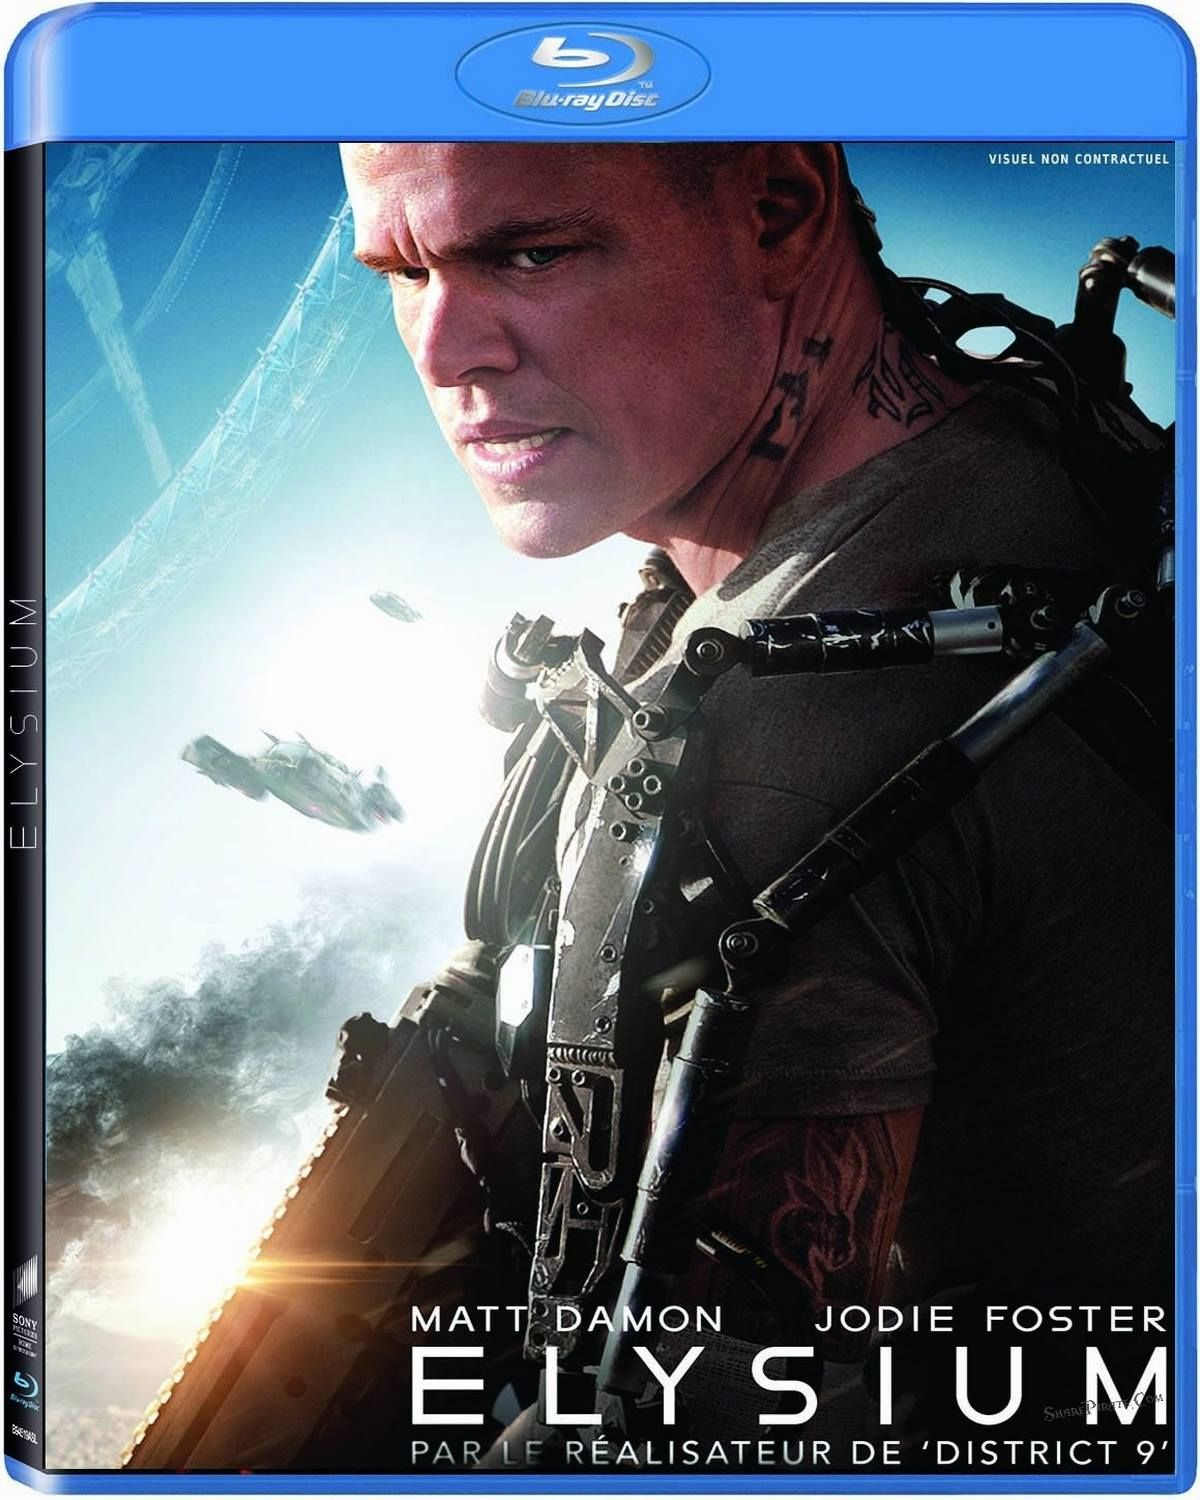 Elysium.2013.1080p.Blu-ray.AVC.DTS-HD.MA.7.1-NiP | SharePirate